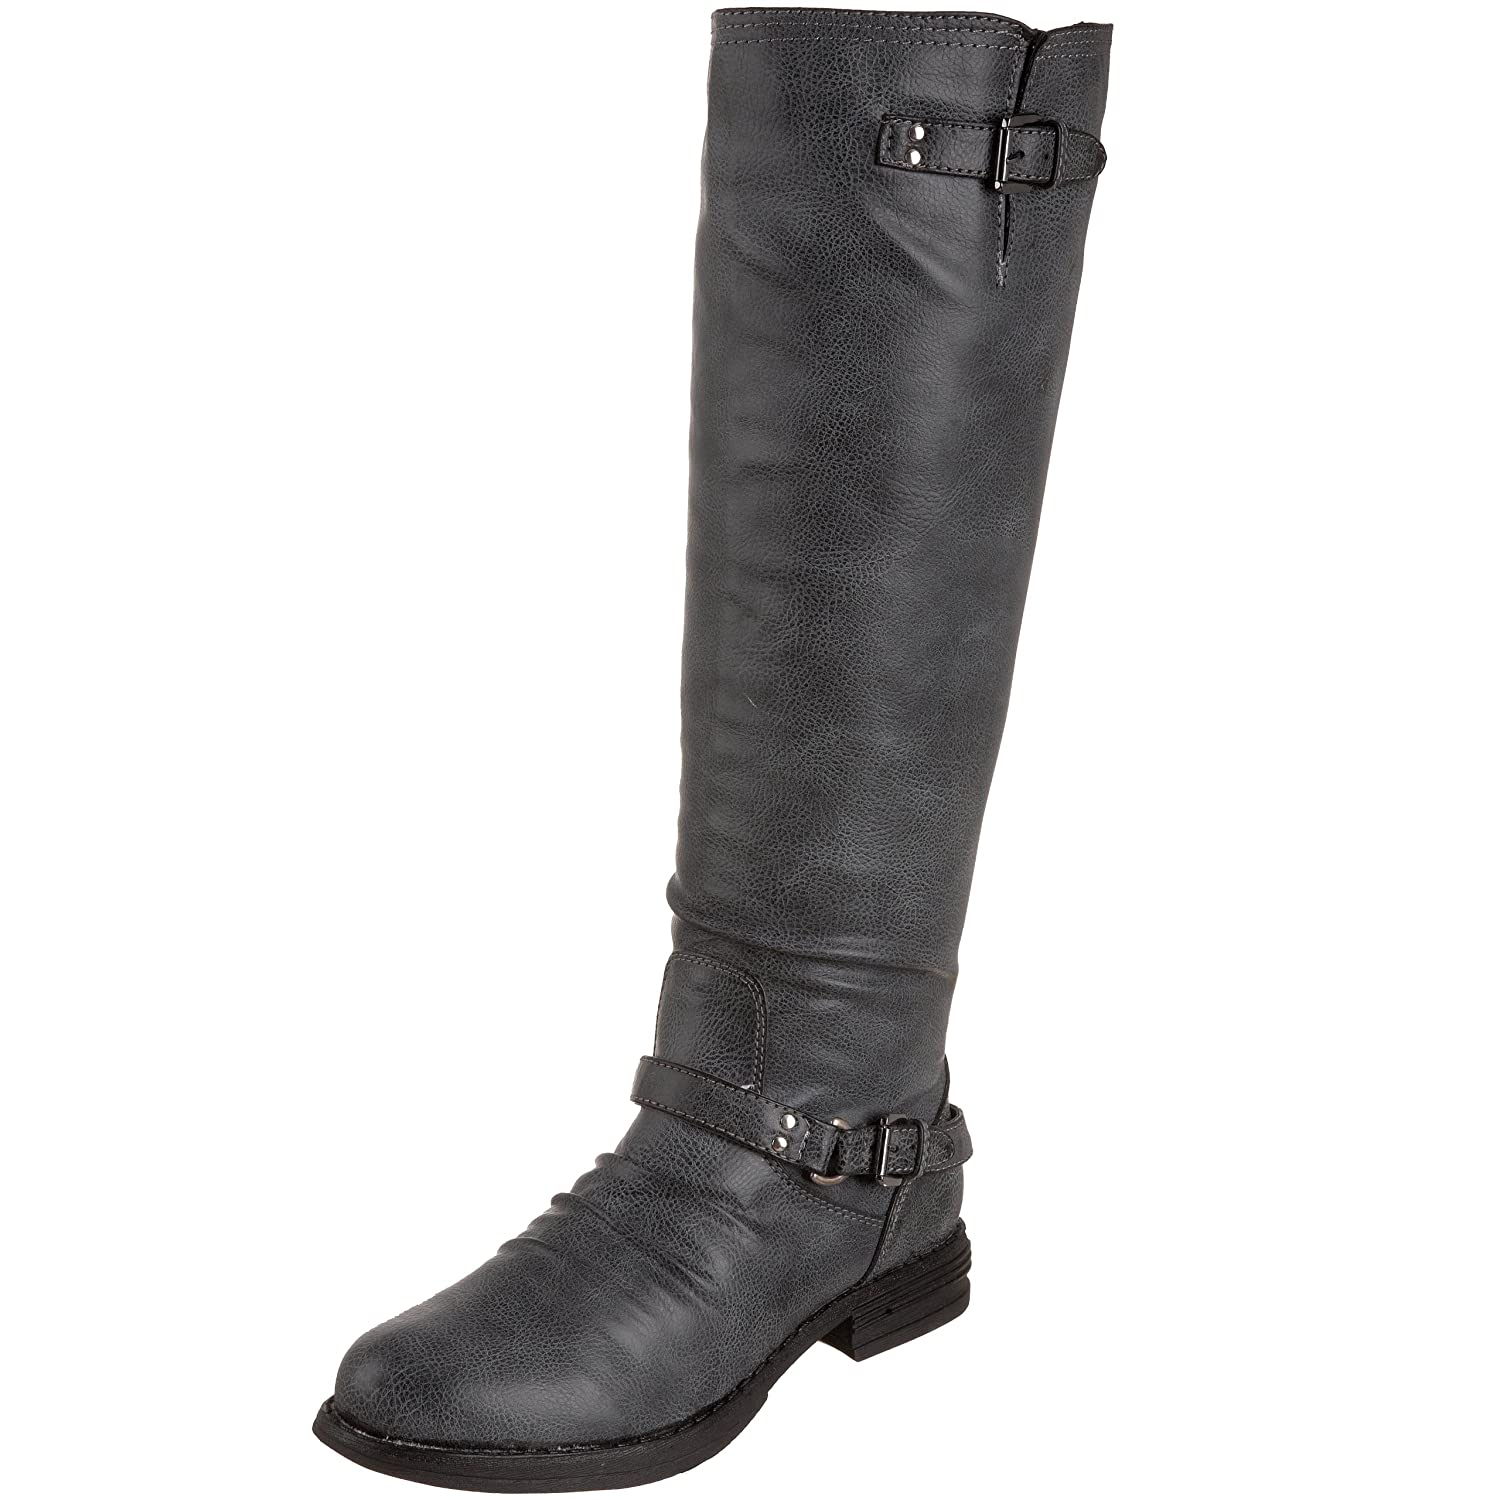 Madden Girl Womens Zoiiee Boot Black Paris 95 M Us Cut Engineer Shoes Safety Boots Iron Suede Leather Knee High